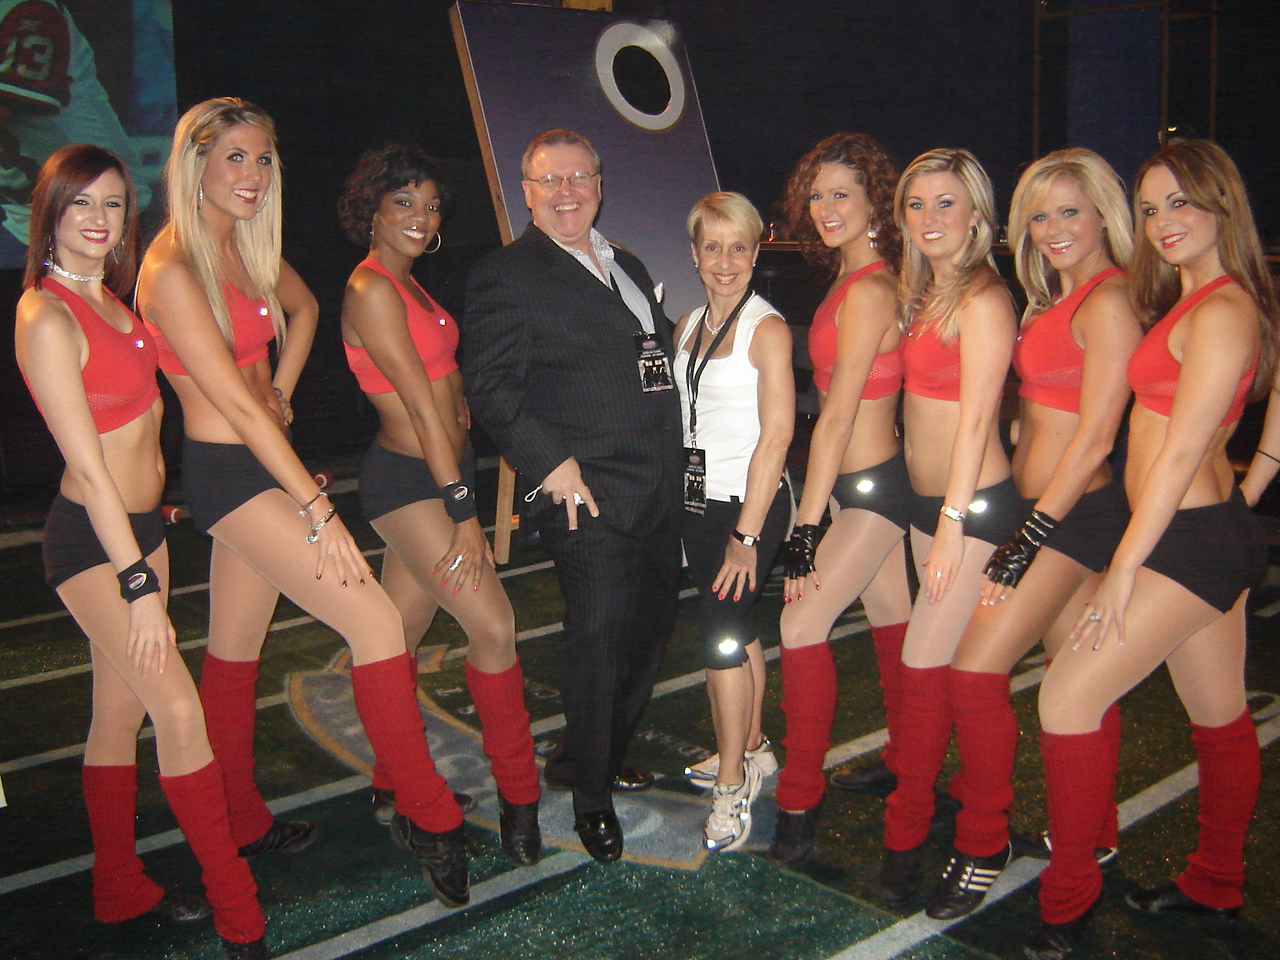 nov.08_-_montreal_-_maxim_grey_cup_party_010